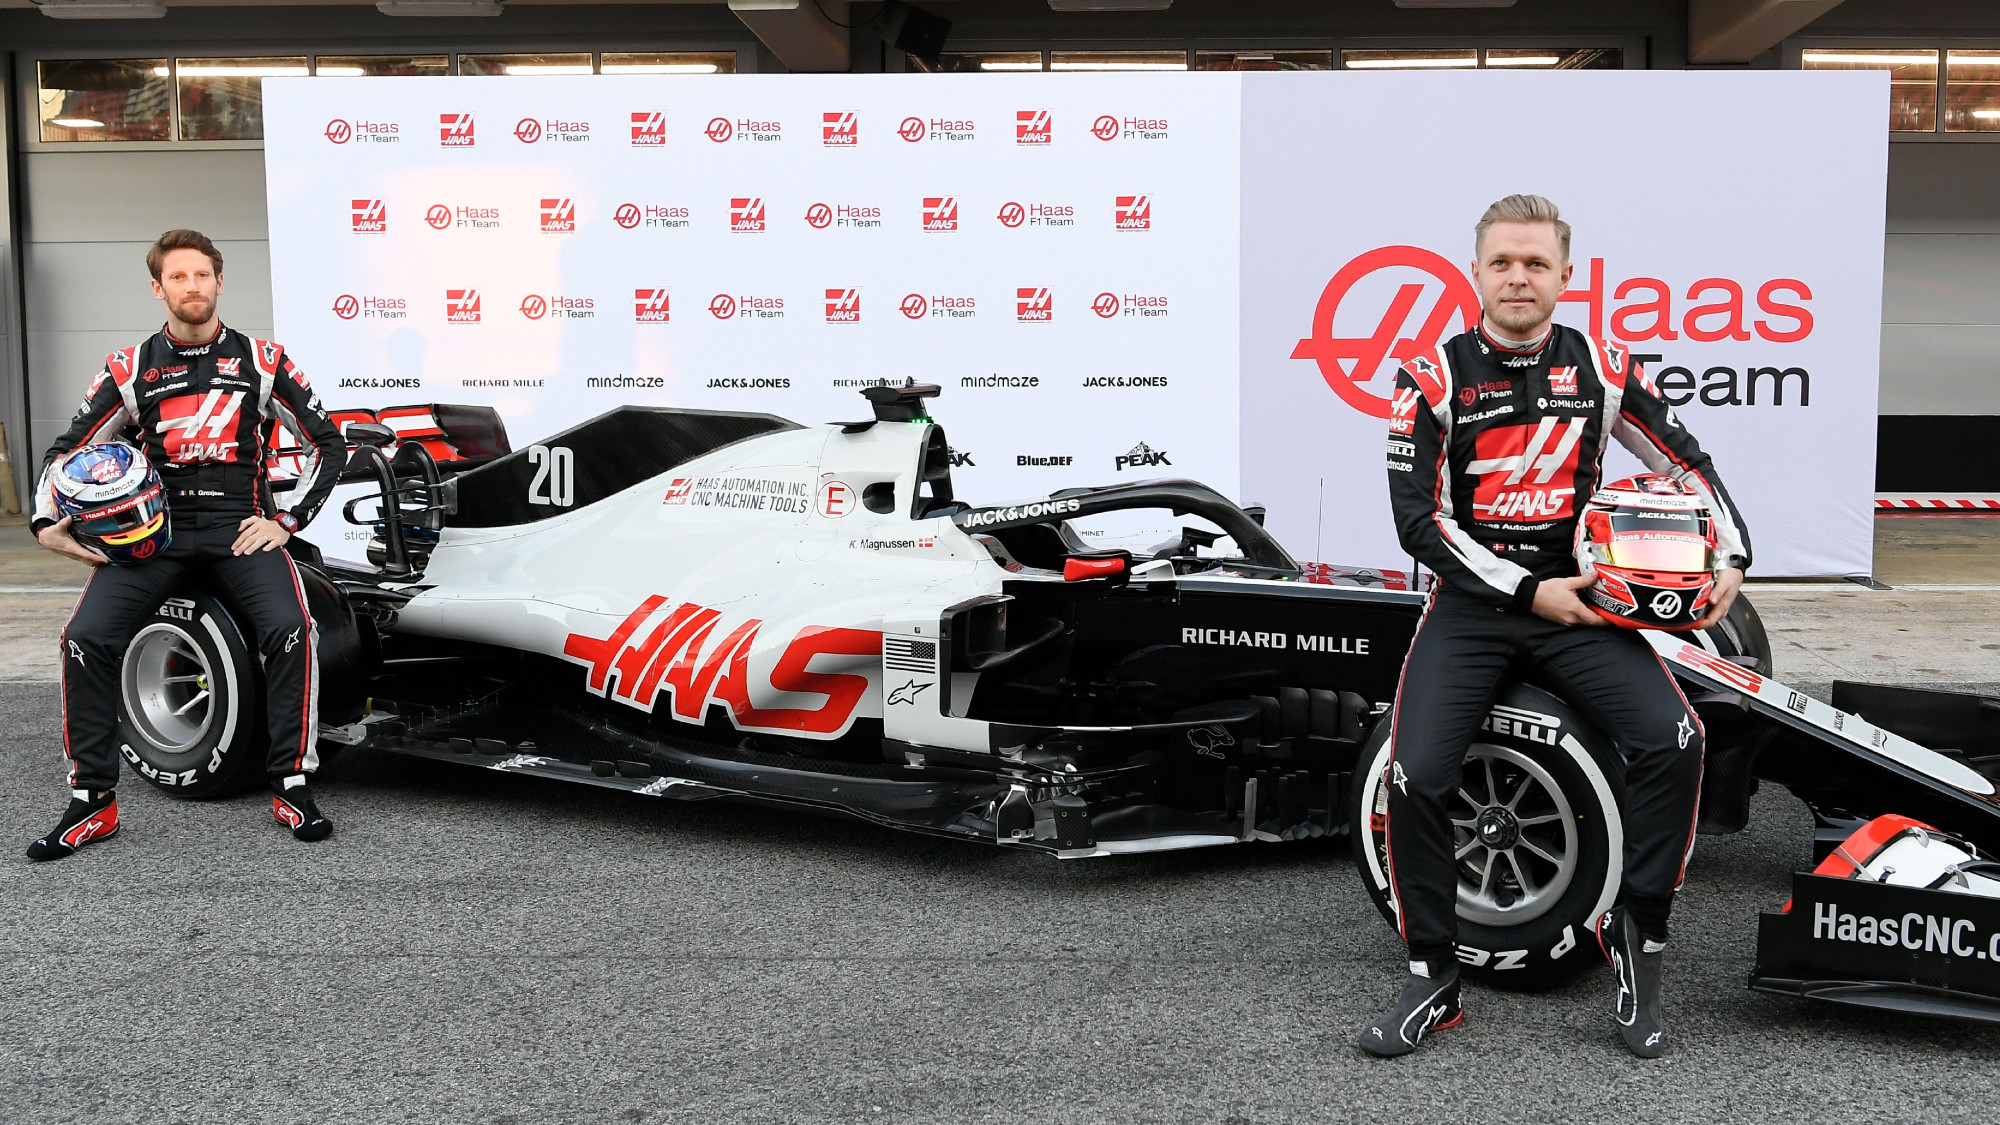 Romain Grosjean, Kevin Magnussen, Haas 2020 launch